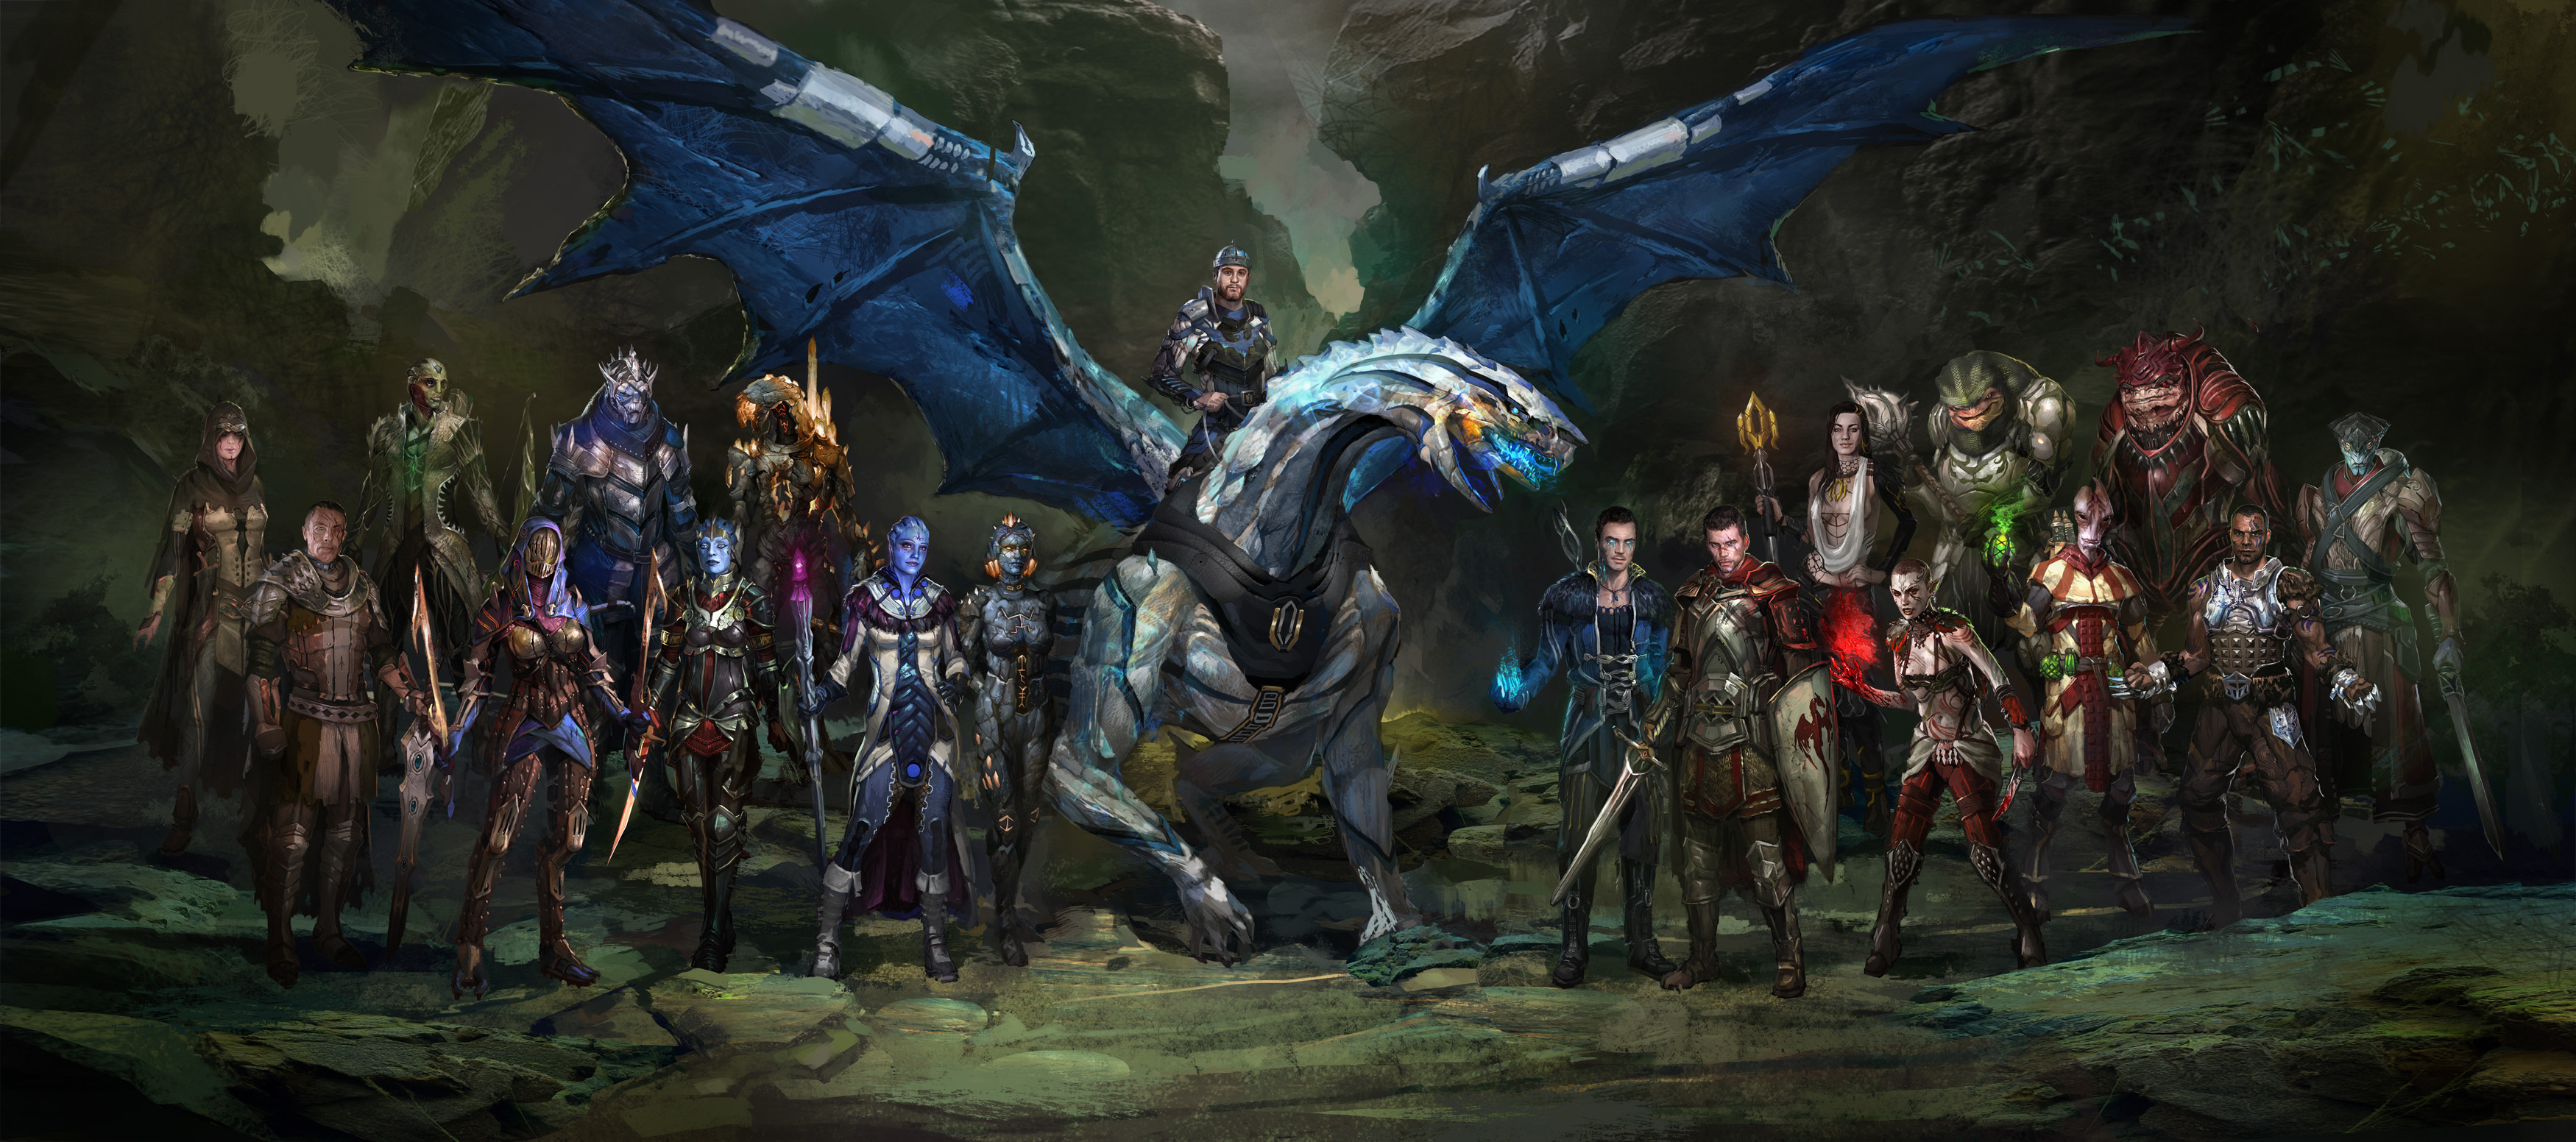 Awesome Medieval Fantasy Mass Effect Wallpaper